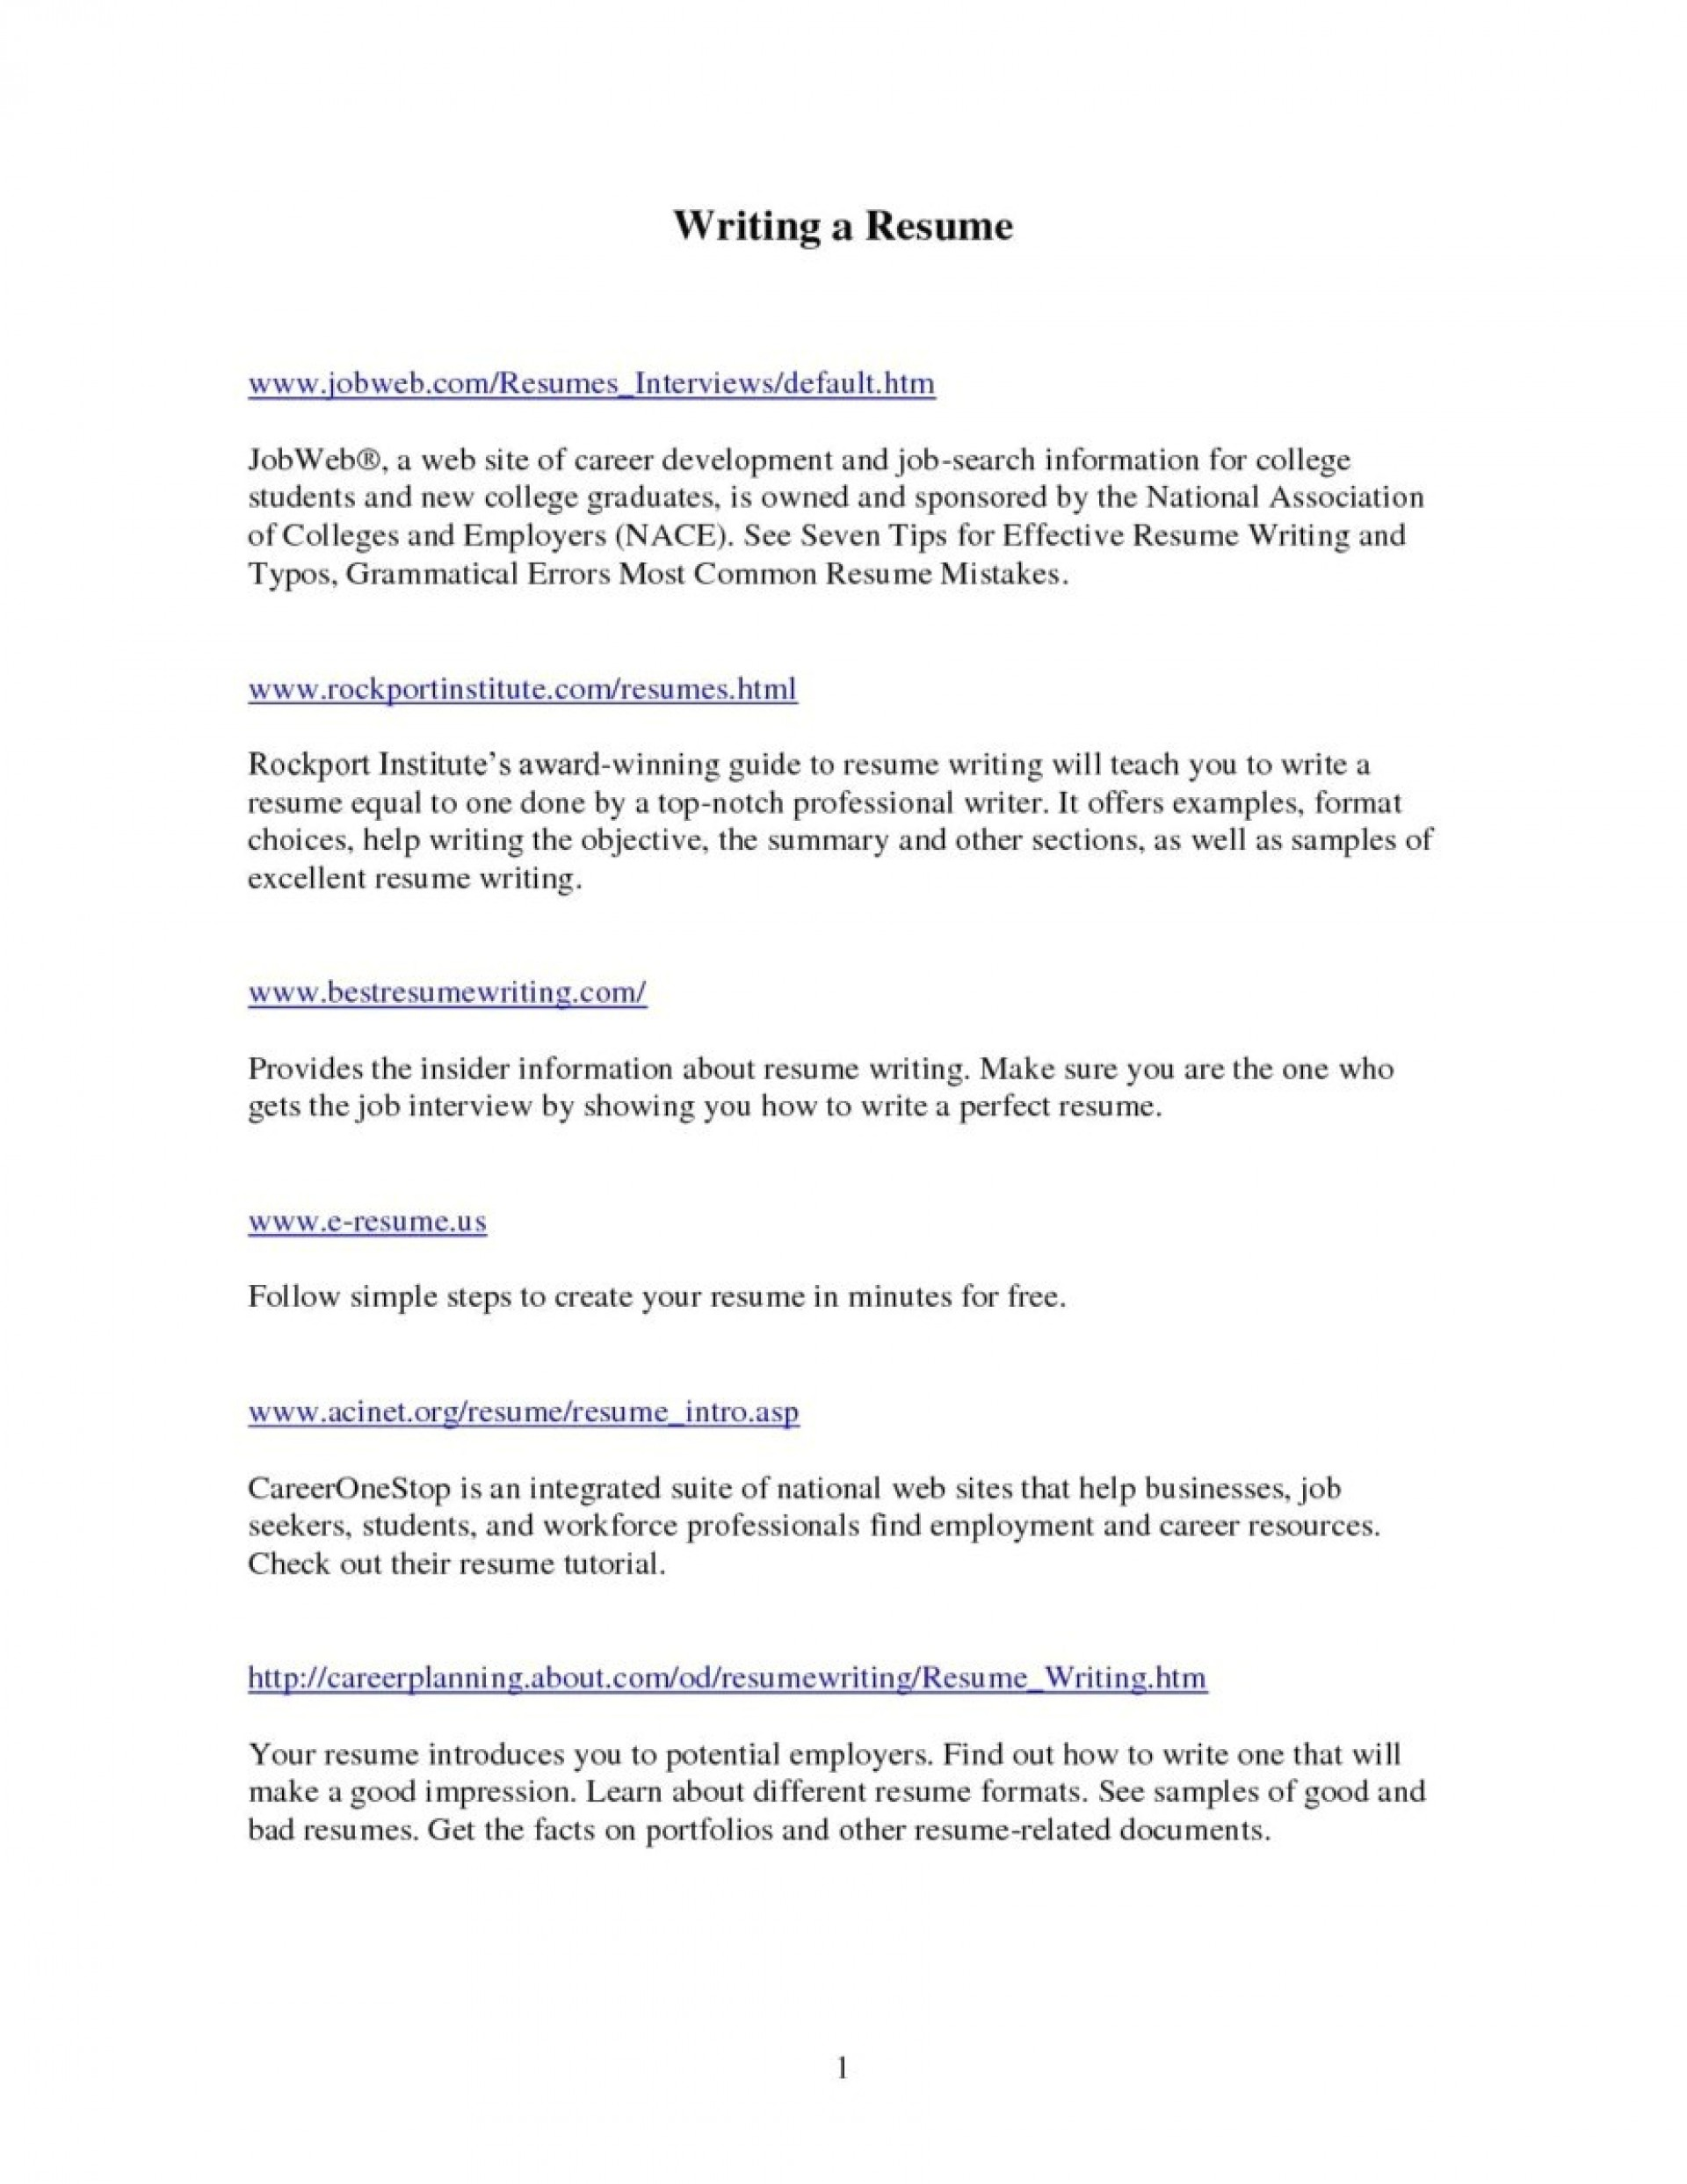 010 How To Write Research Paper Outline Apa Resume Writing Service Reviews Format Best Writers Inspirational Help Professional Of Free Beautiful A Style 1920